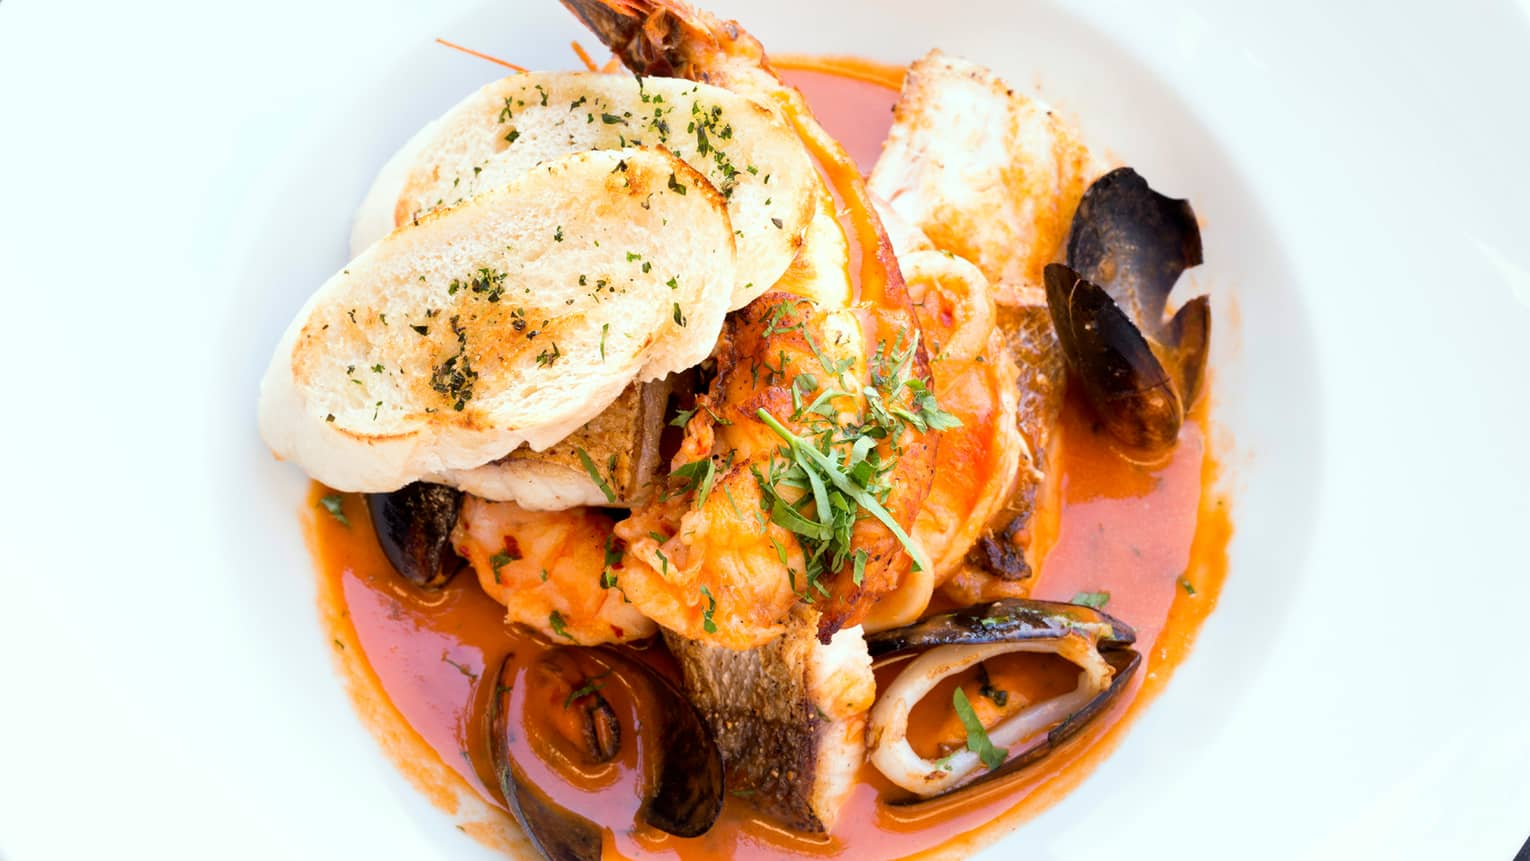 Cioppino seafood dish with shrimp, clams, mussels in red sauce, toasted baguette